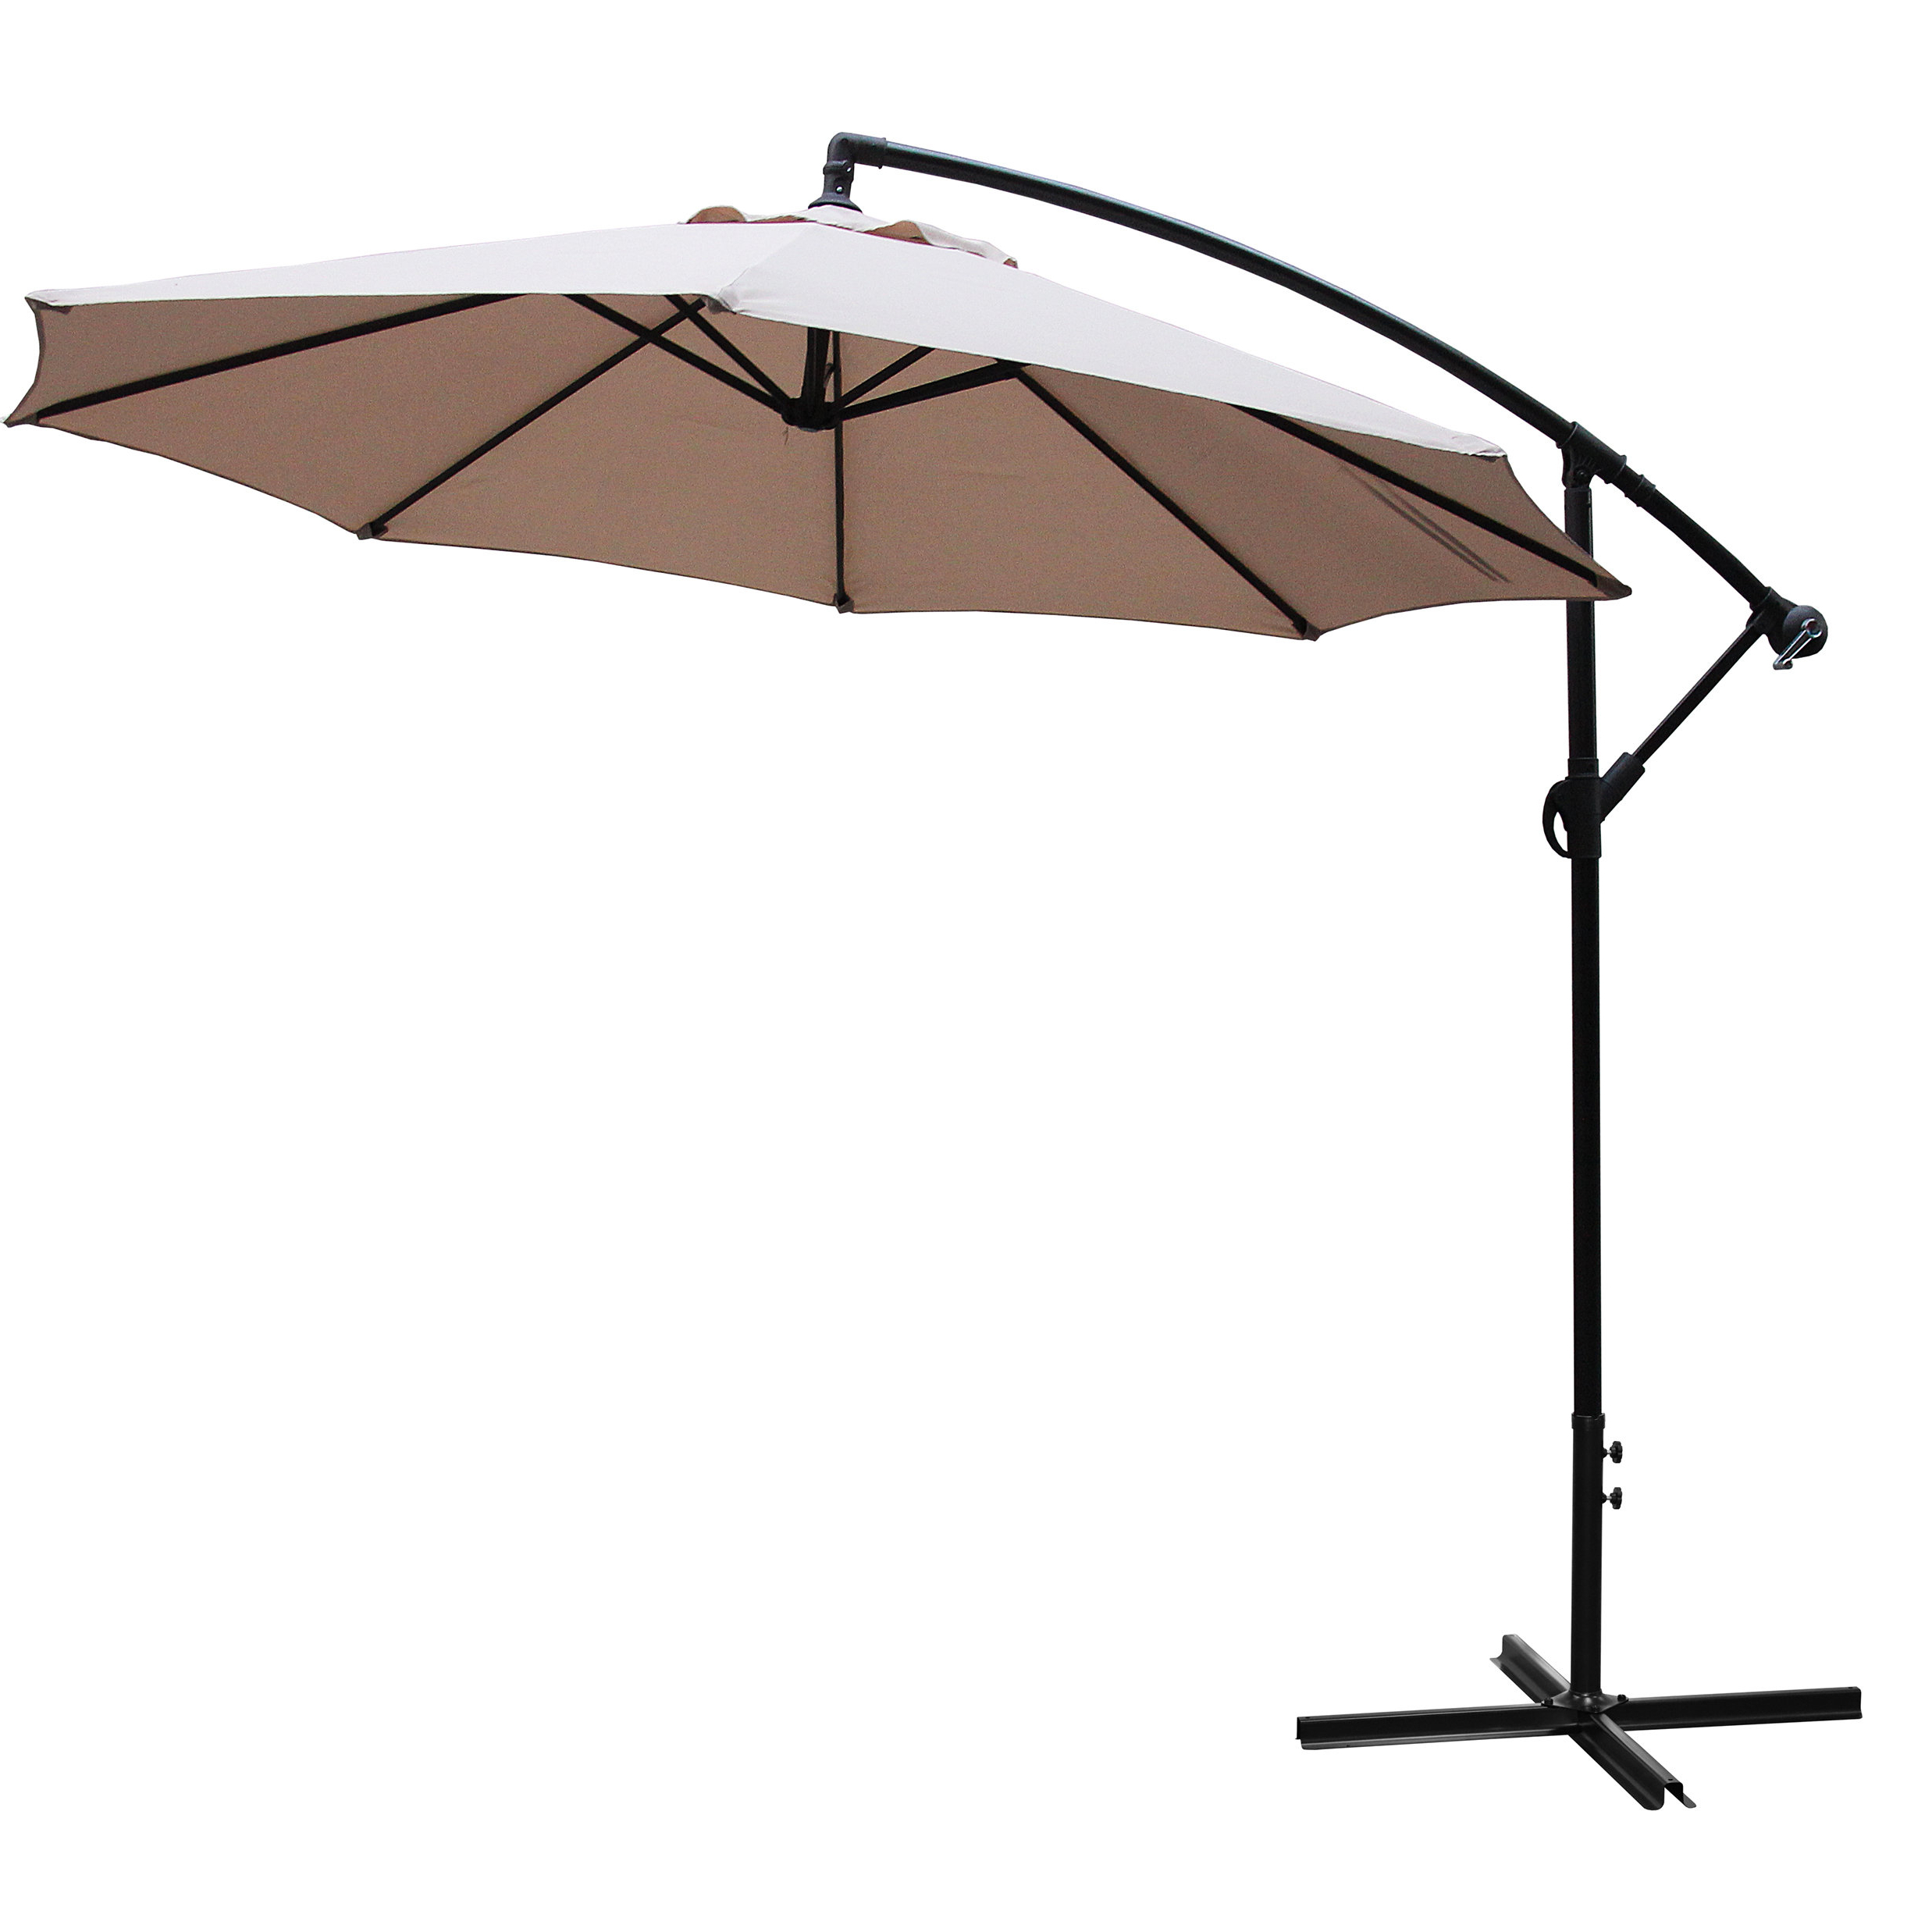 Best And Newest Iyanna Market Umbrellas Within Iyanna 10' Cantilever Umbrella (View 2 of 20)